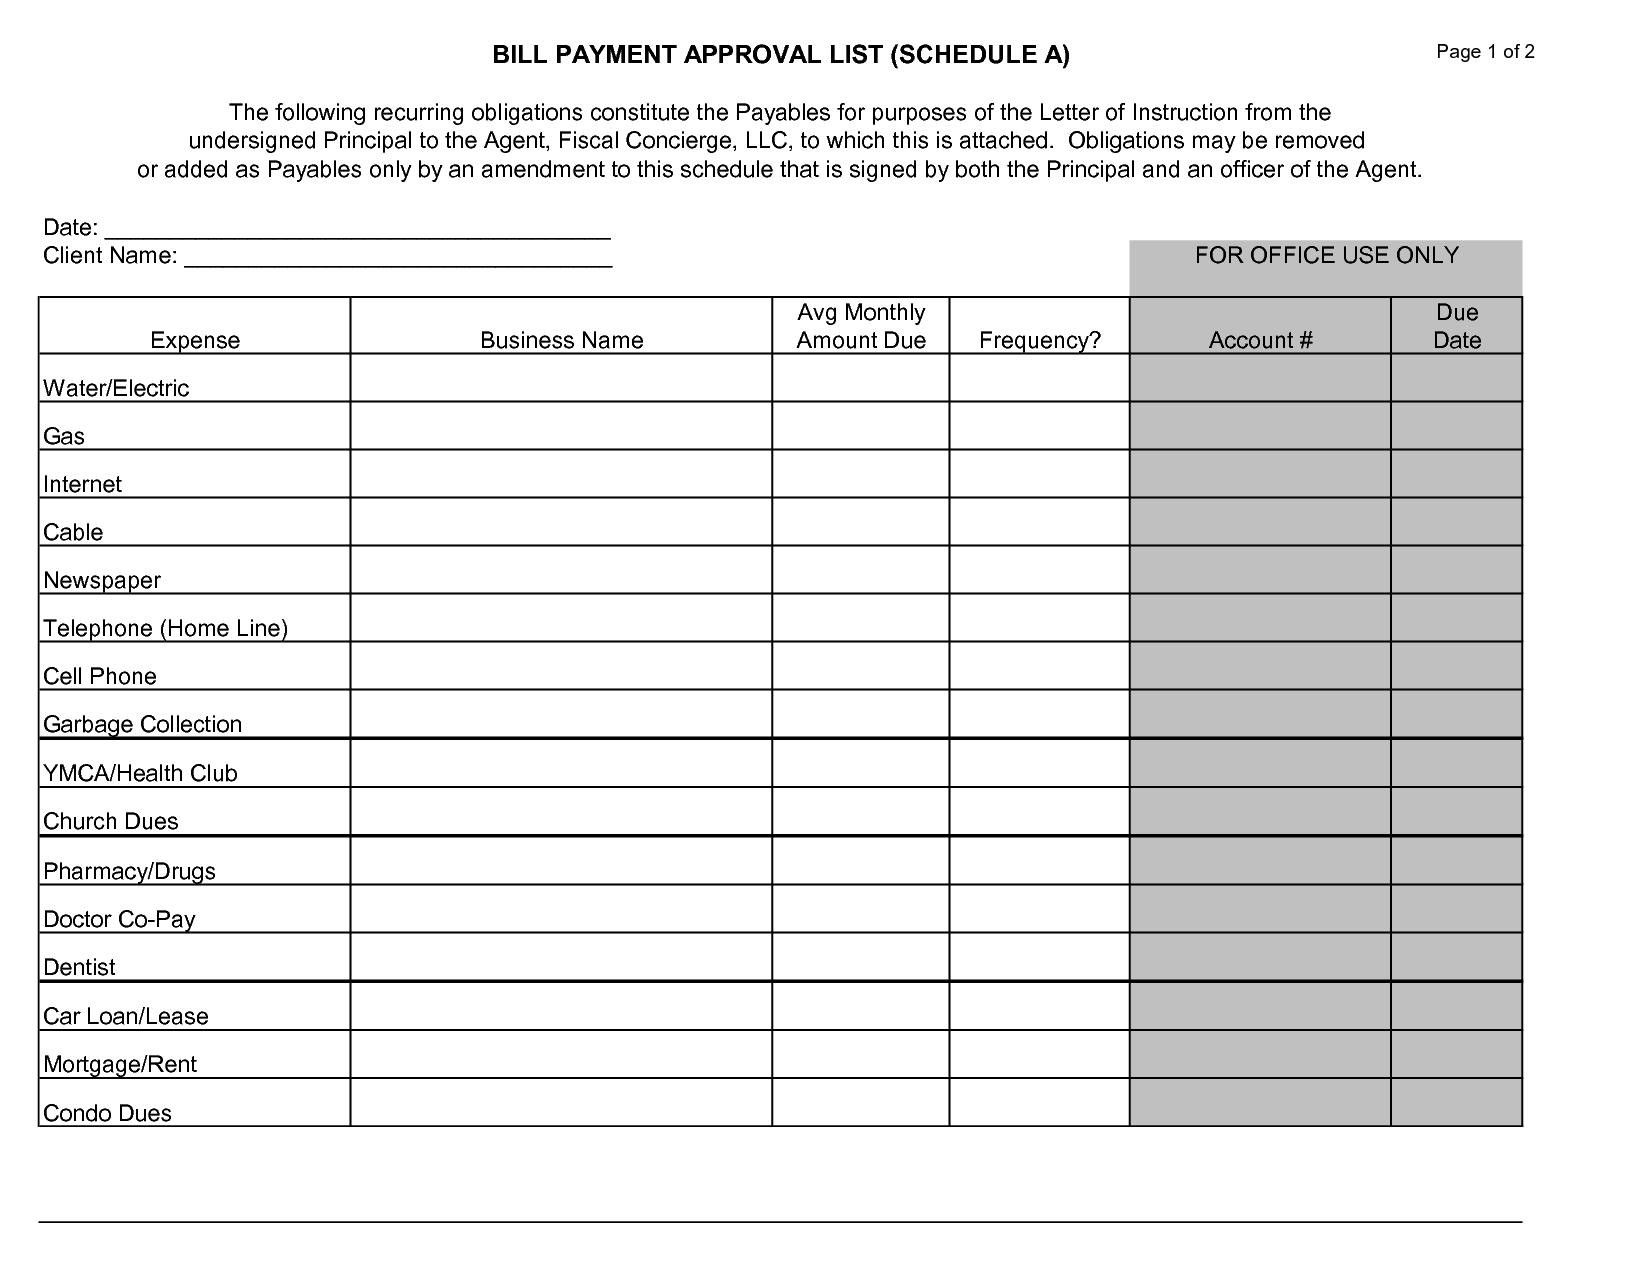 Printable Monthly Bill Chart  Vaydile.euforic.cofree with regard to Printable Monthly Bill Chart